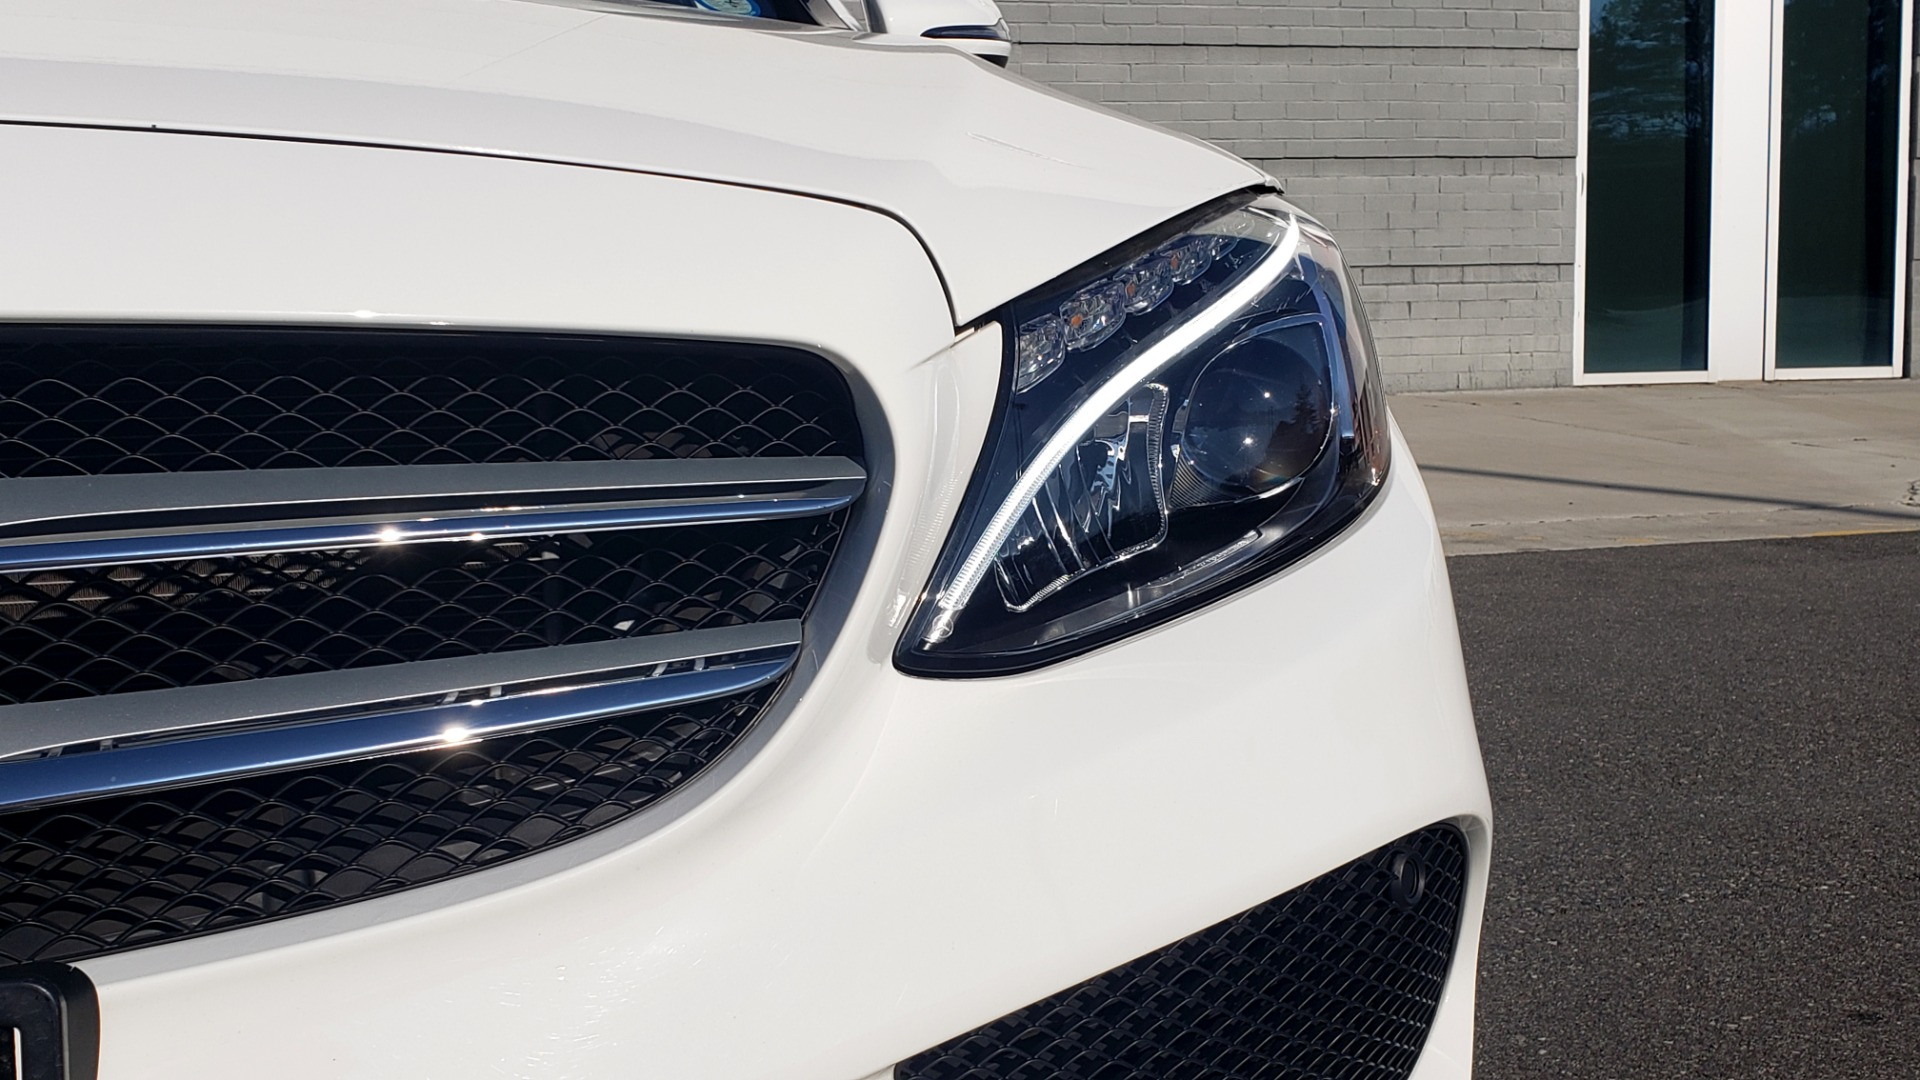 Used 2018 Mercedes-Benz C-Class C 300 PREMIUM / NAV / PANO-ROOF / AMG LINE / MULTIMEDIA for sale $28,235 at Formula Imports in Charlotte NC 28227 22